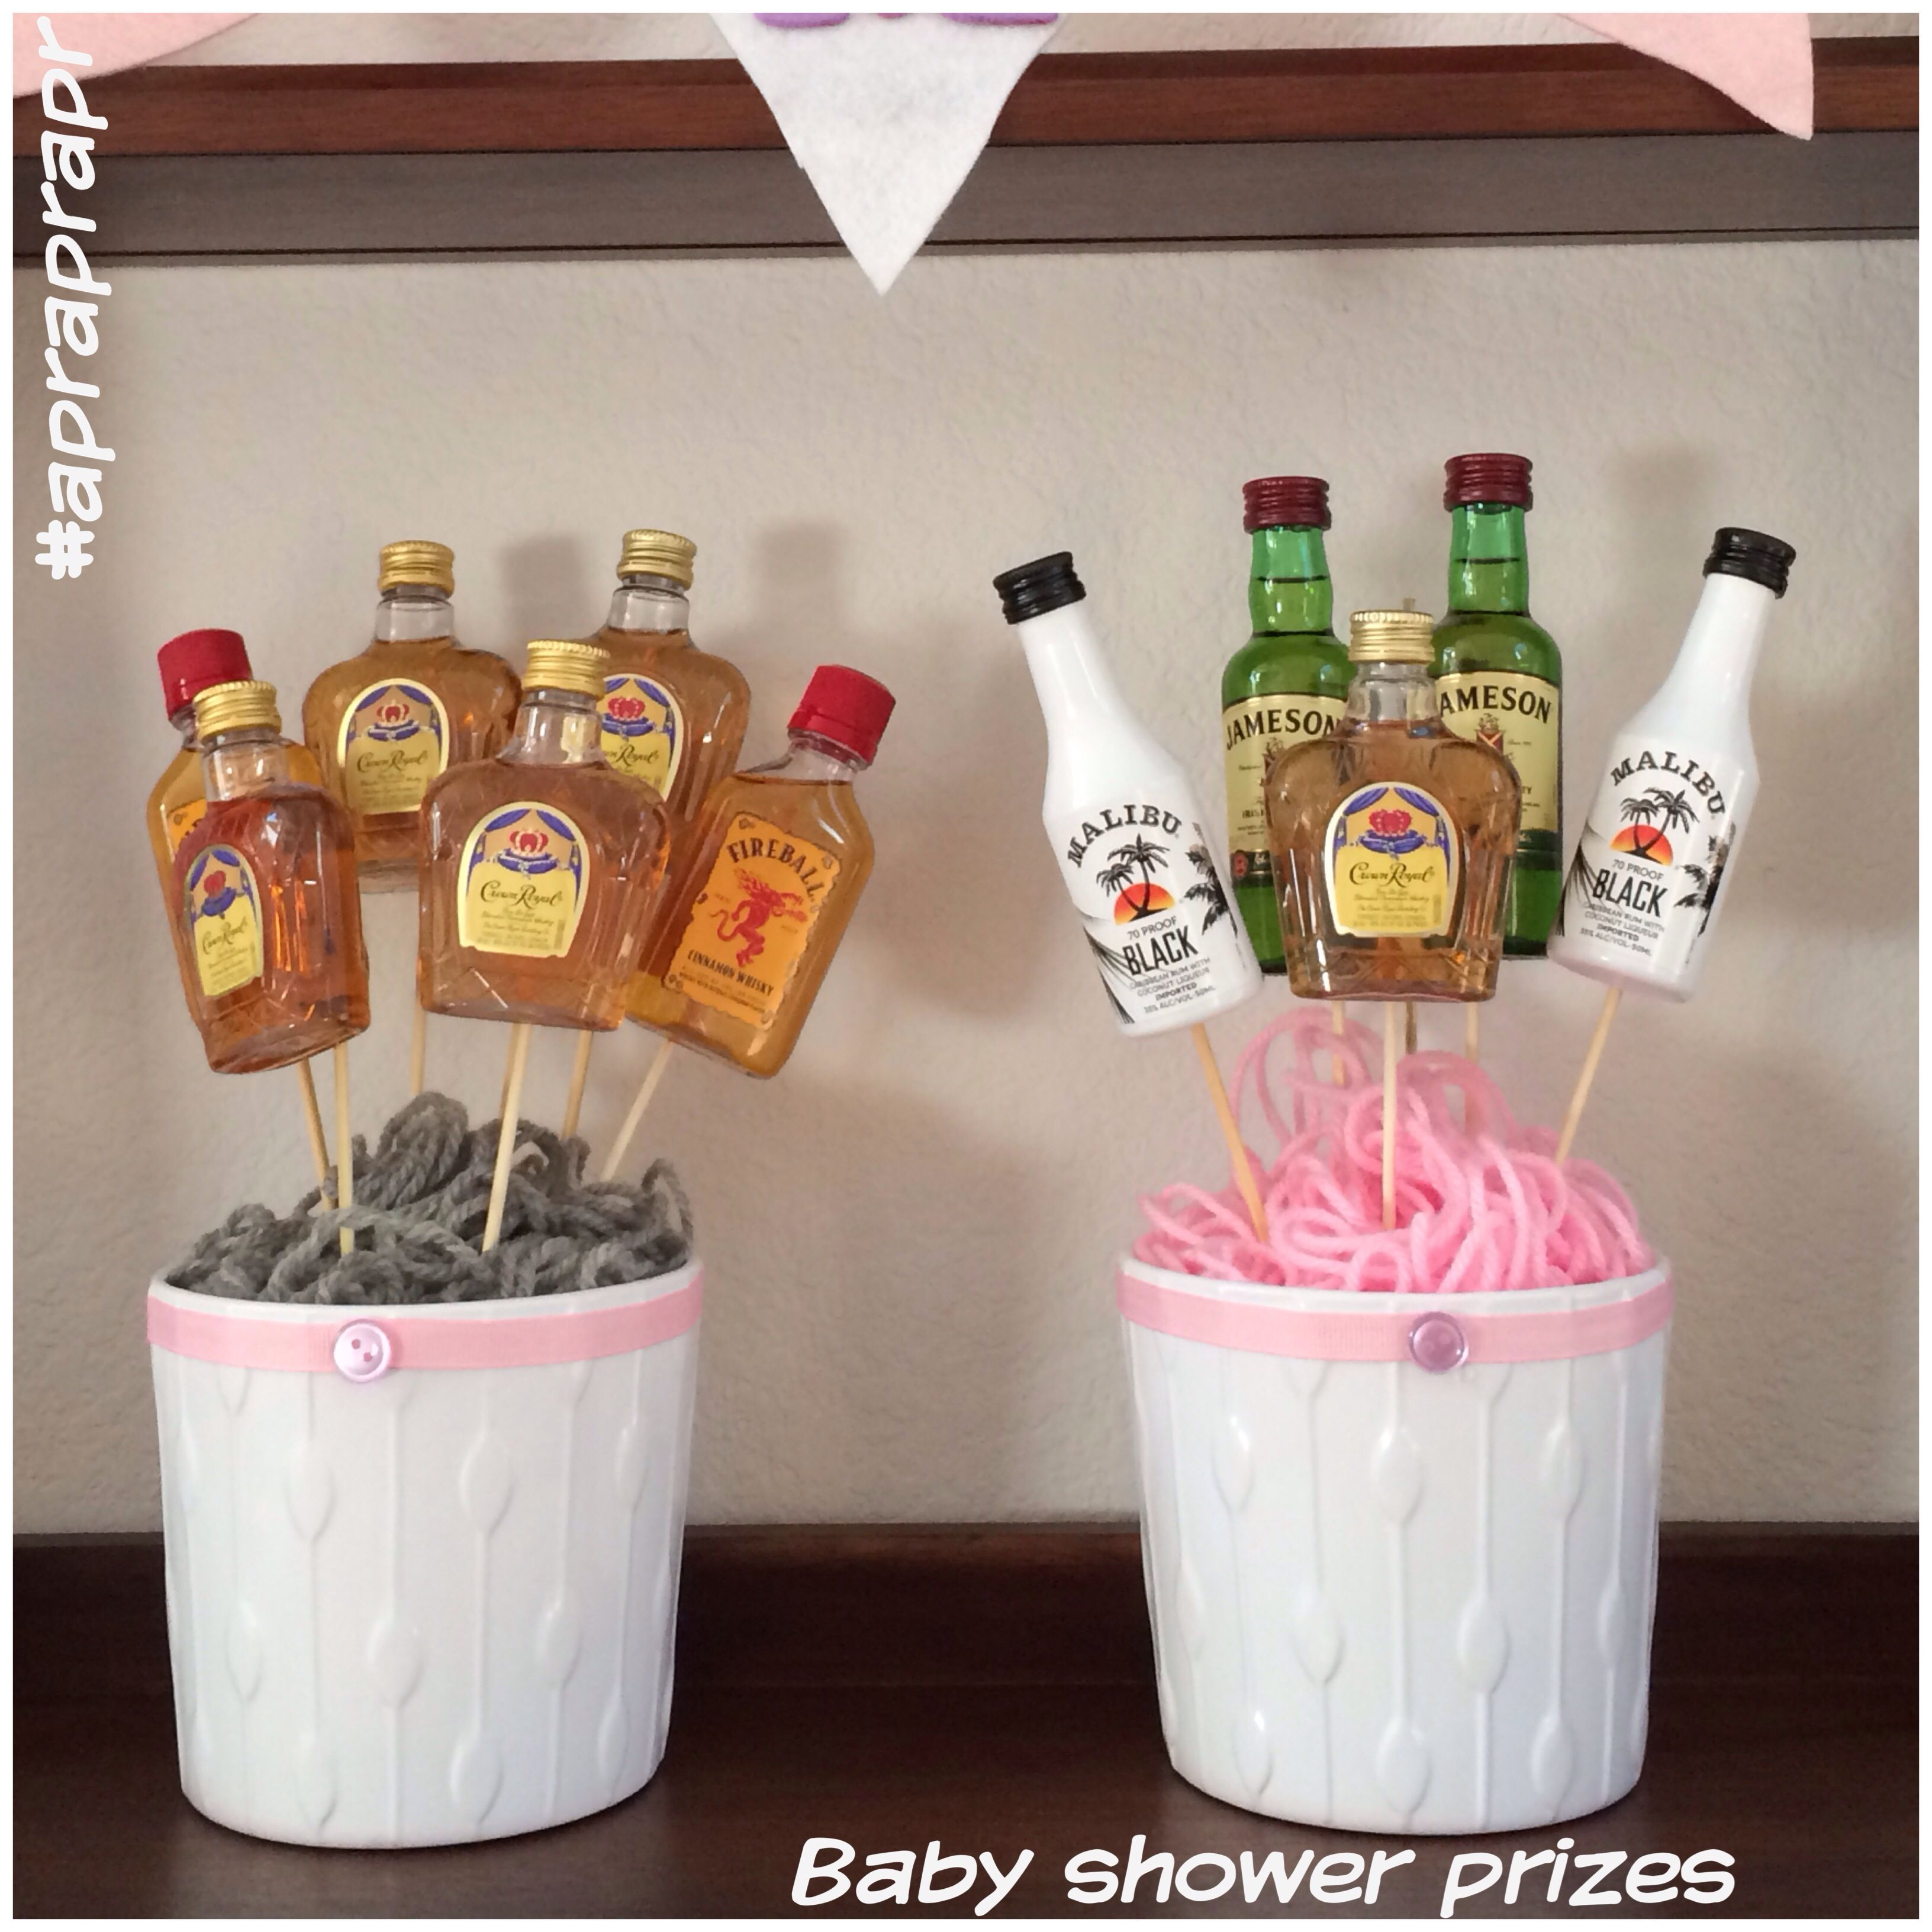 Image Result For Baby Shower Prizes For Guys Baby Shower Prizes Baby Shower Game Gifts Baby Shower Game Prizes